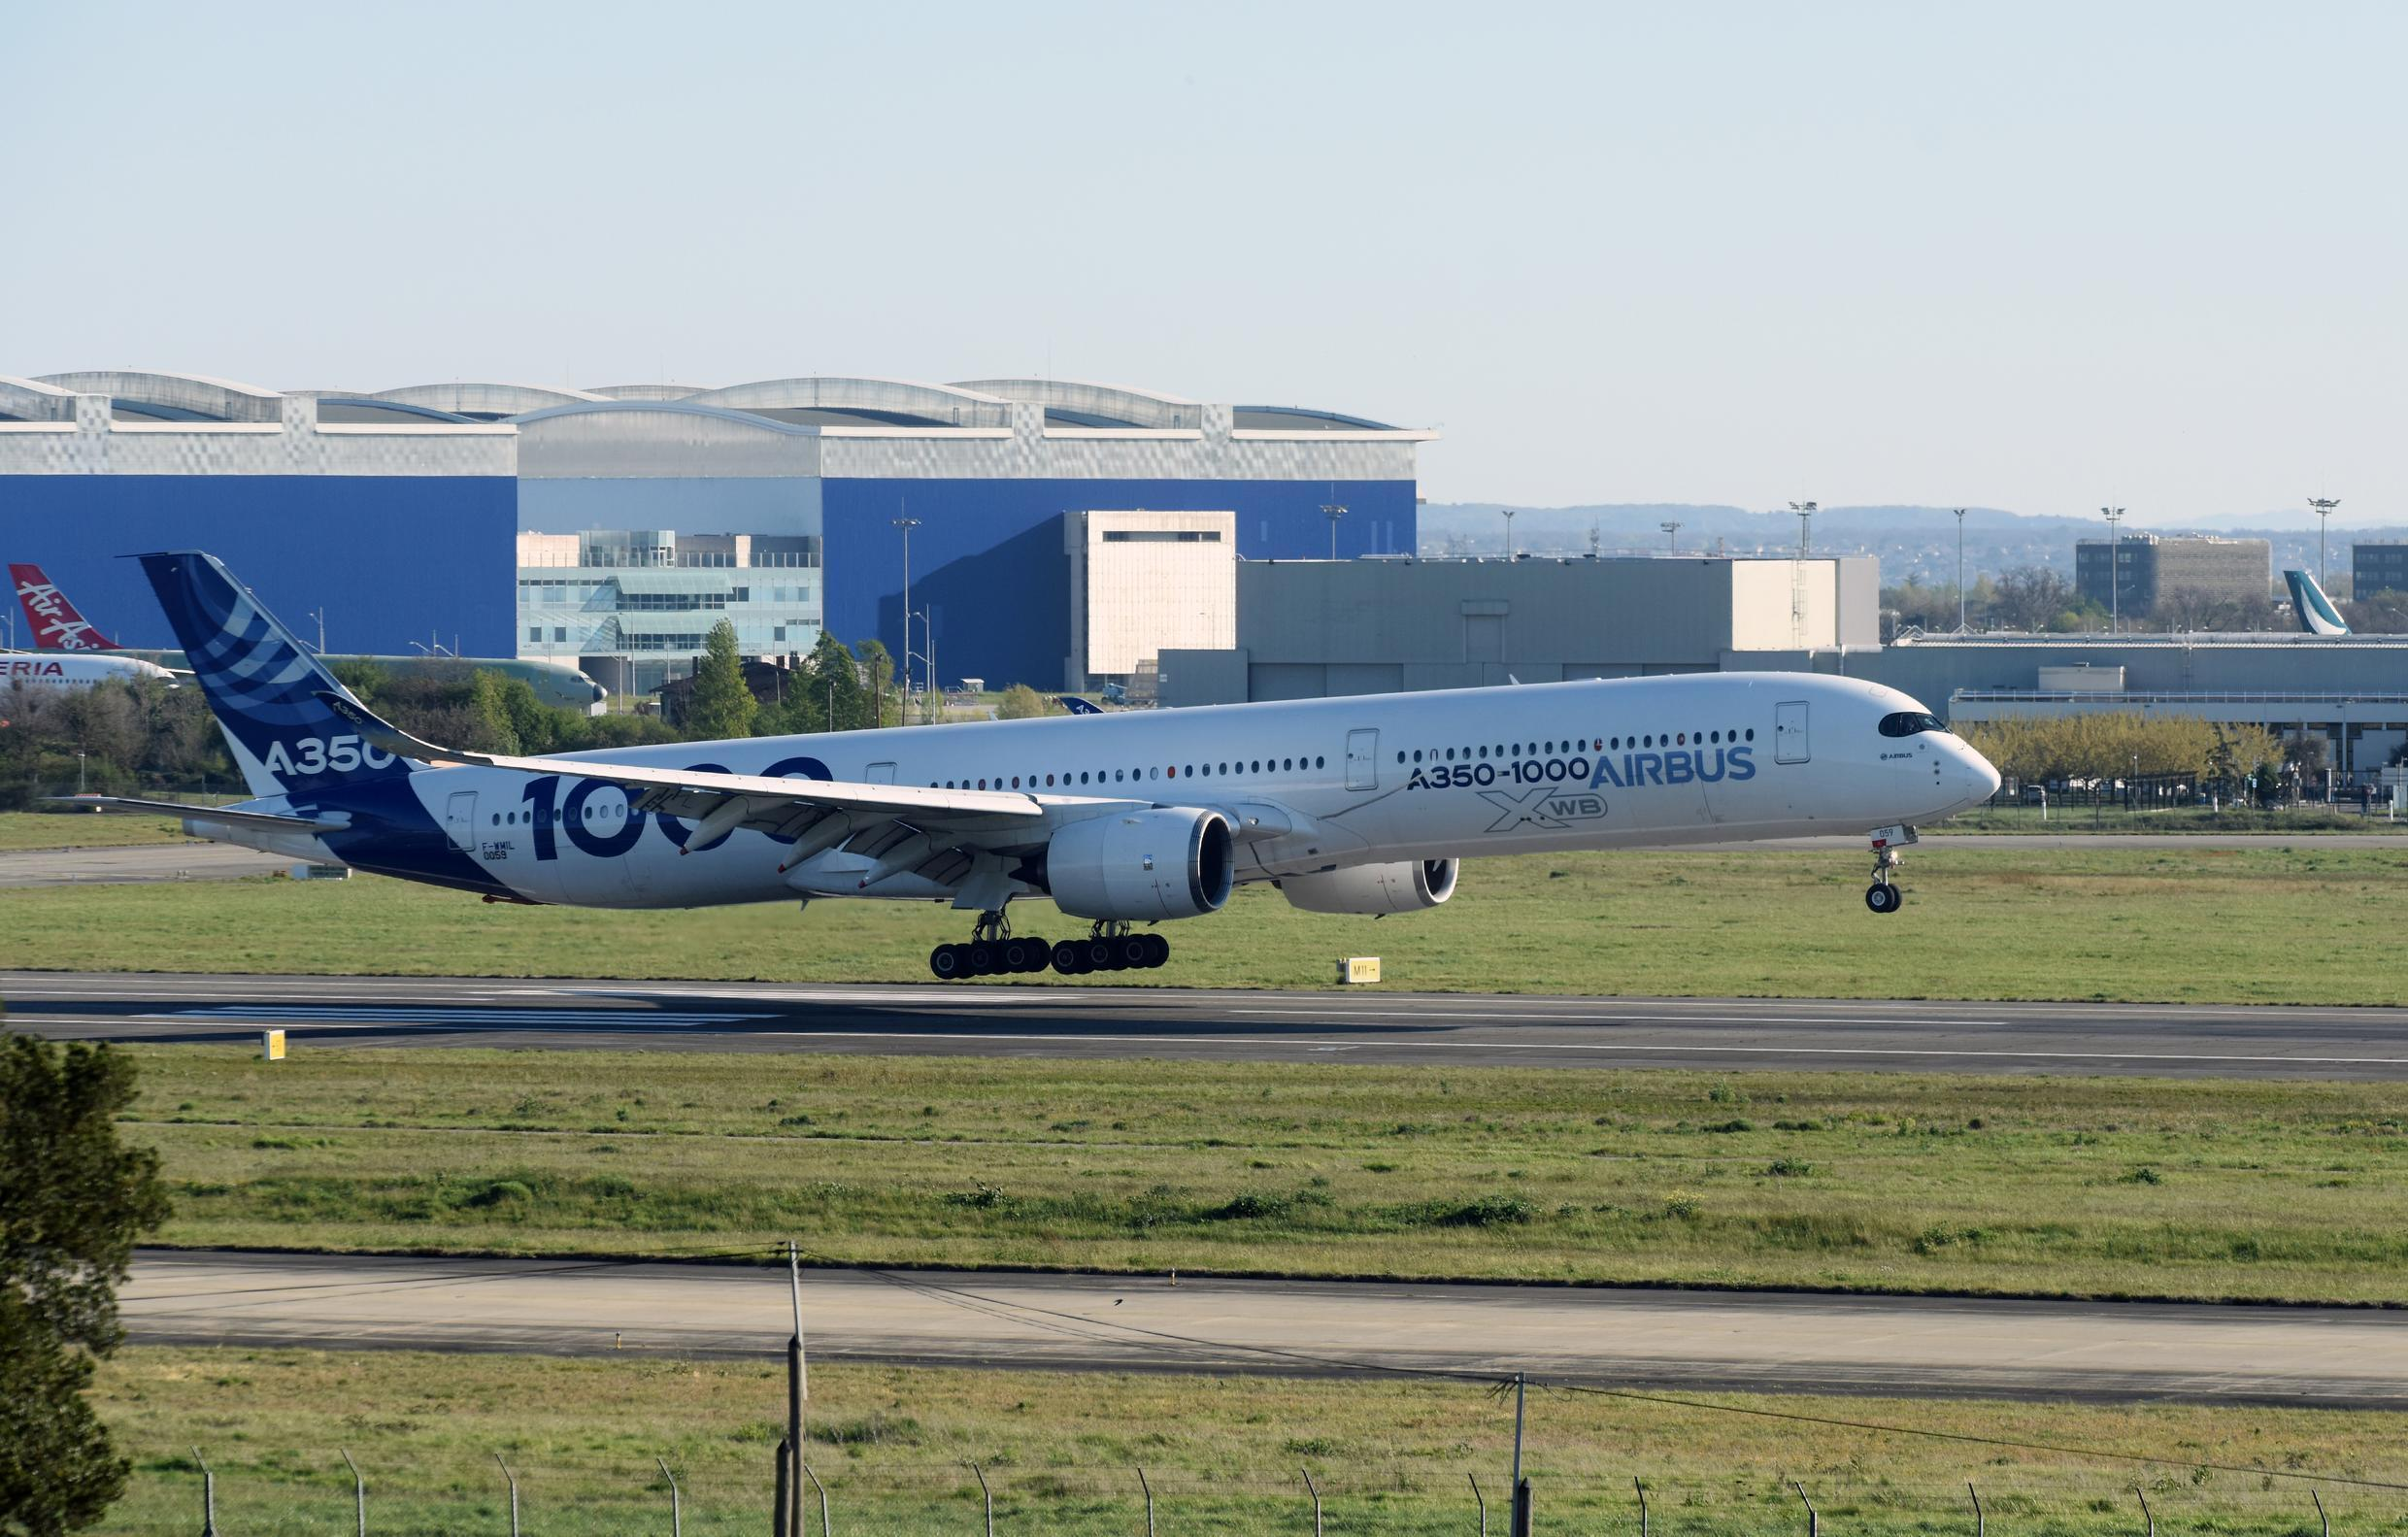 Government help to develop the Airbus A350 was the origin of an epic legal battle between the US and EU over aircraft subsidies